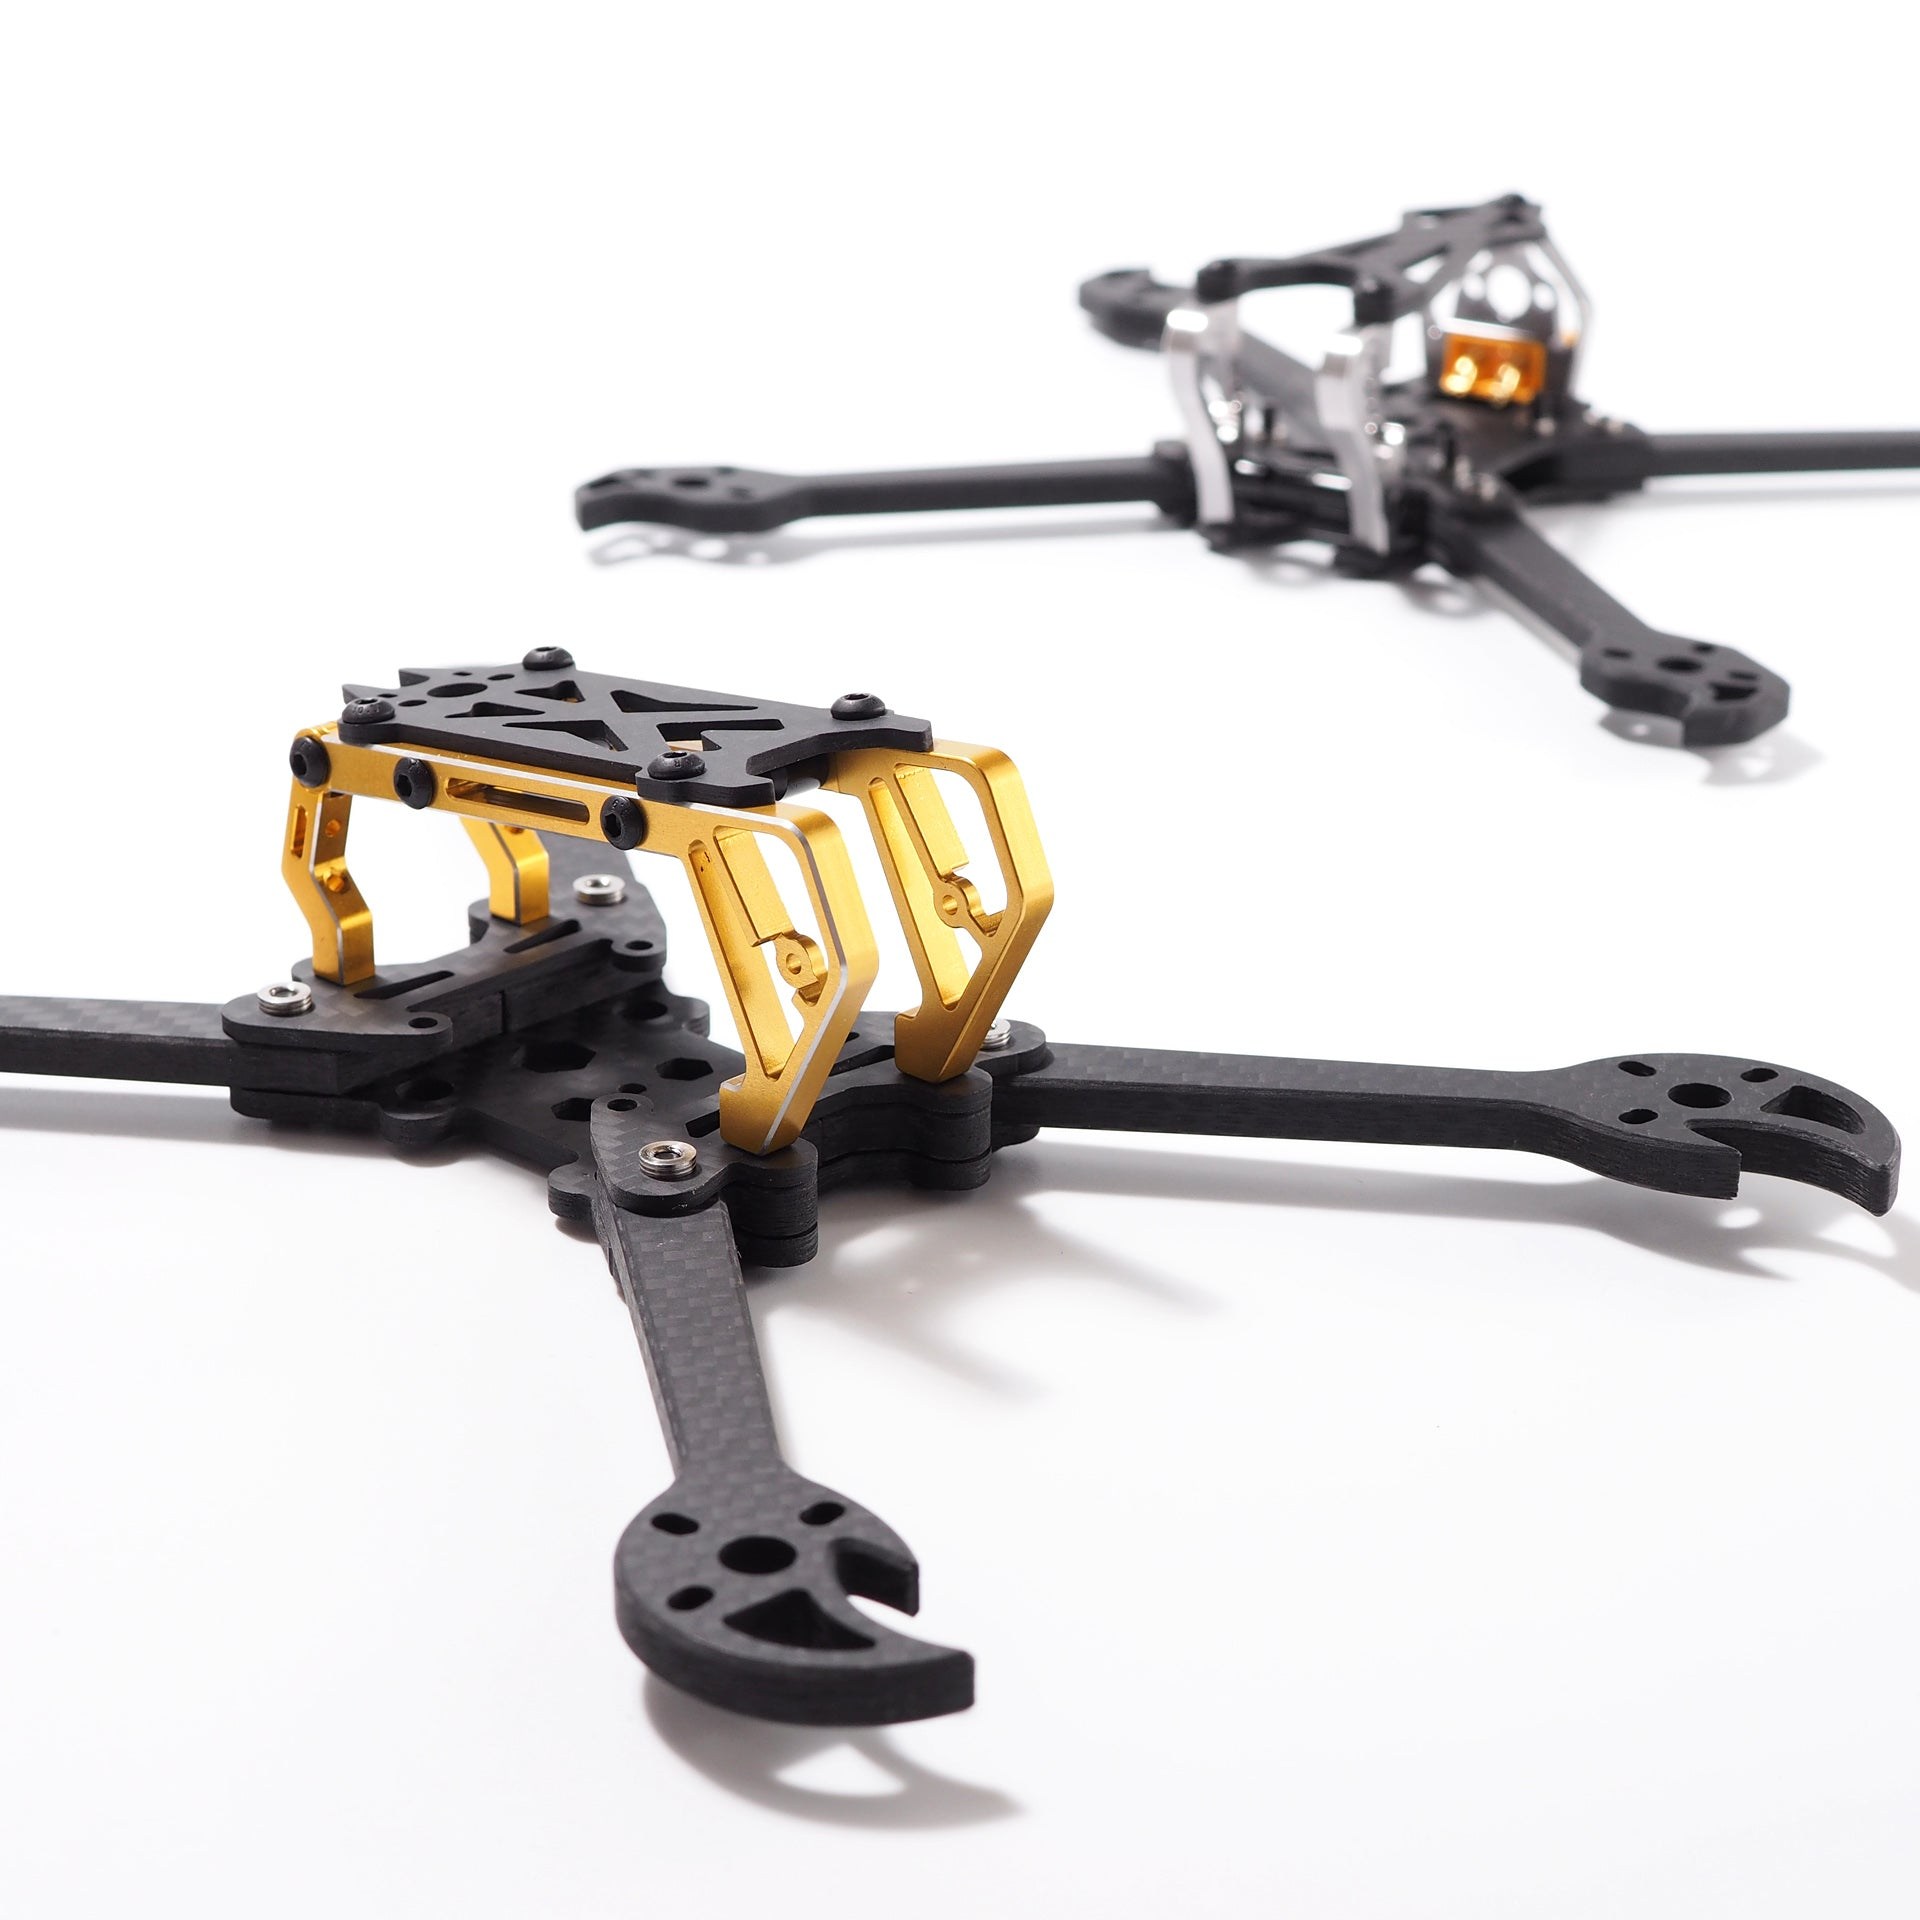 FLYWOO CRAB 220mm 5 Inch FPV Racing Frame 5mm Arm Supports RunCam Micro Swift Foxxer Arrow M icro